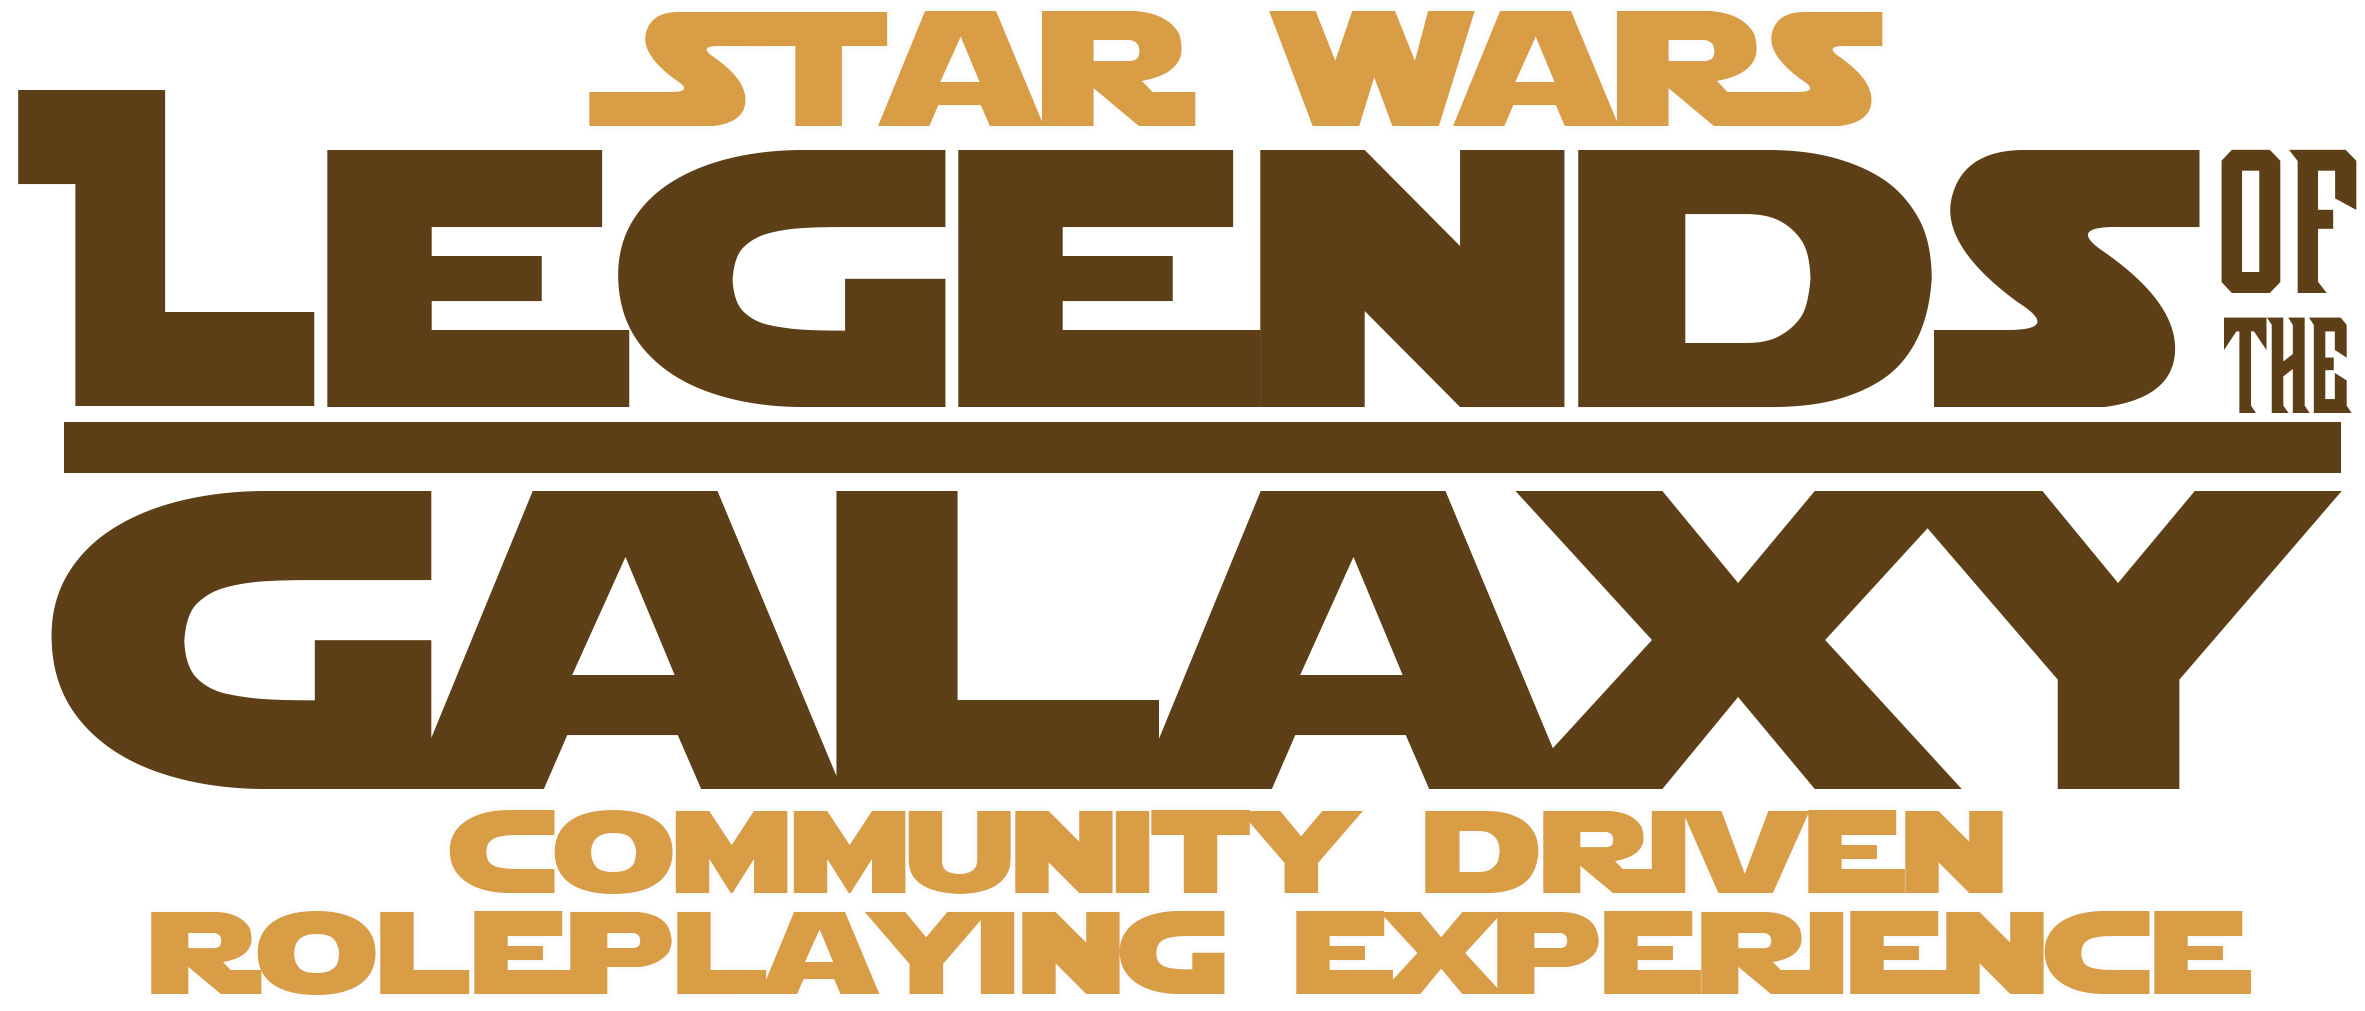 legends-of-the-galaxy.jpg